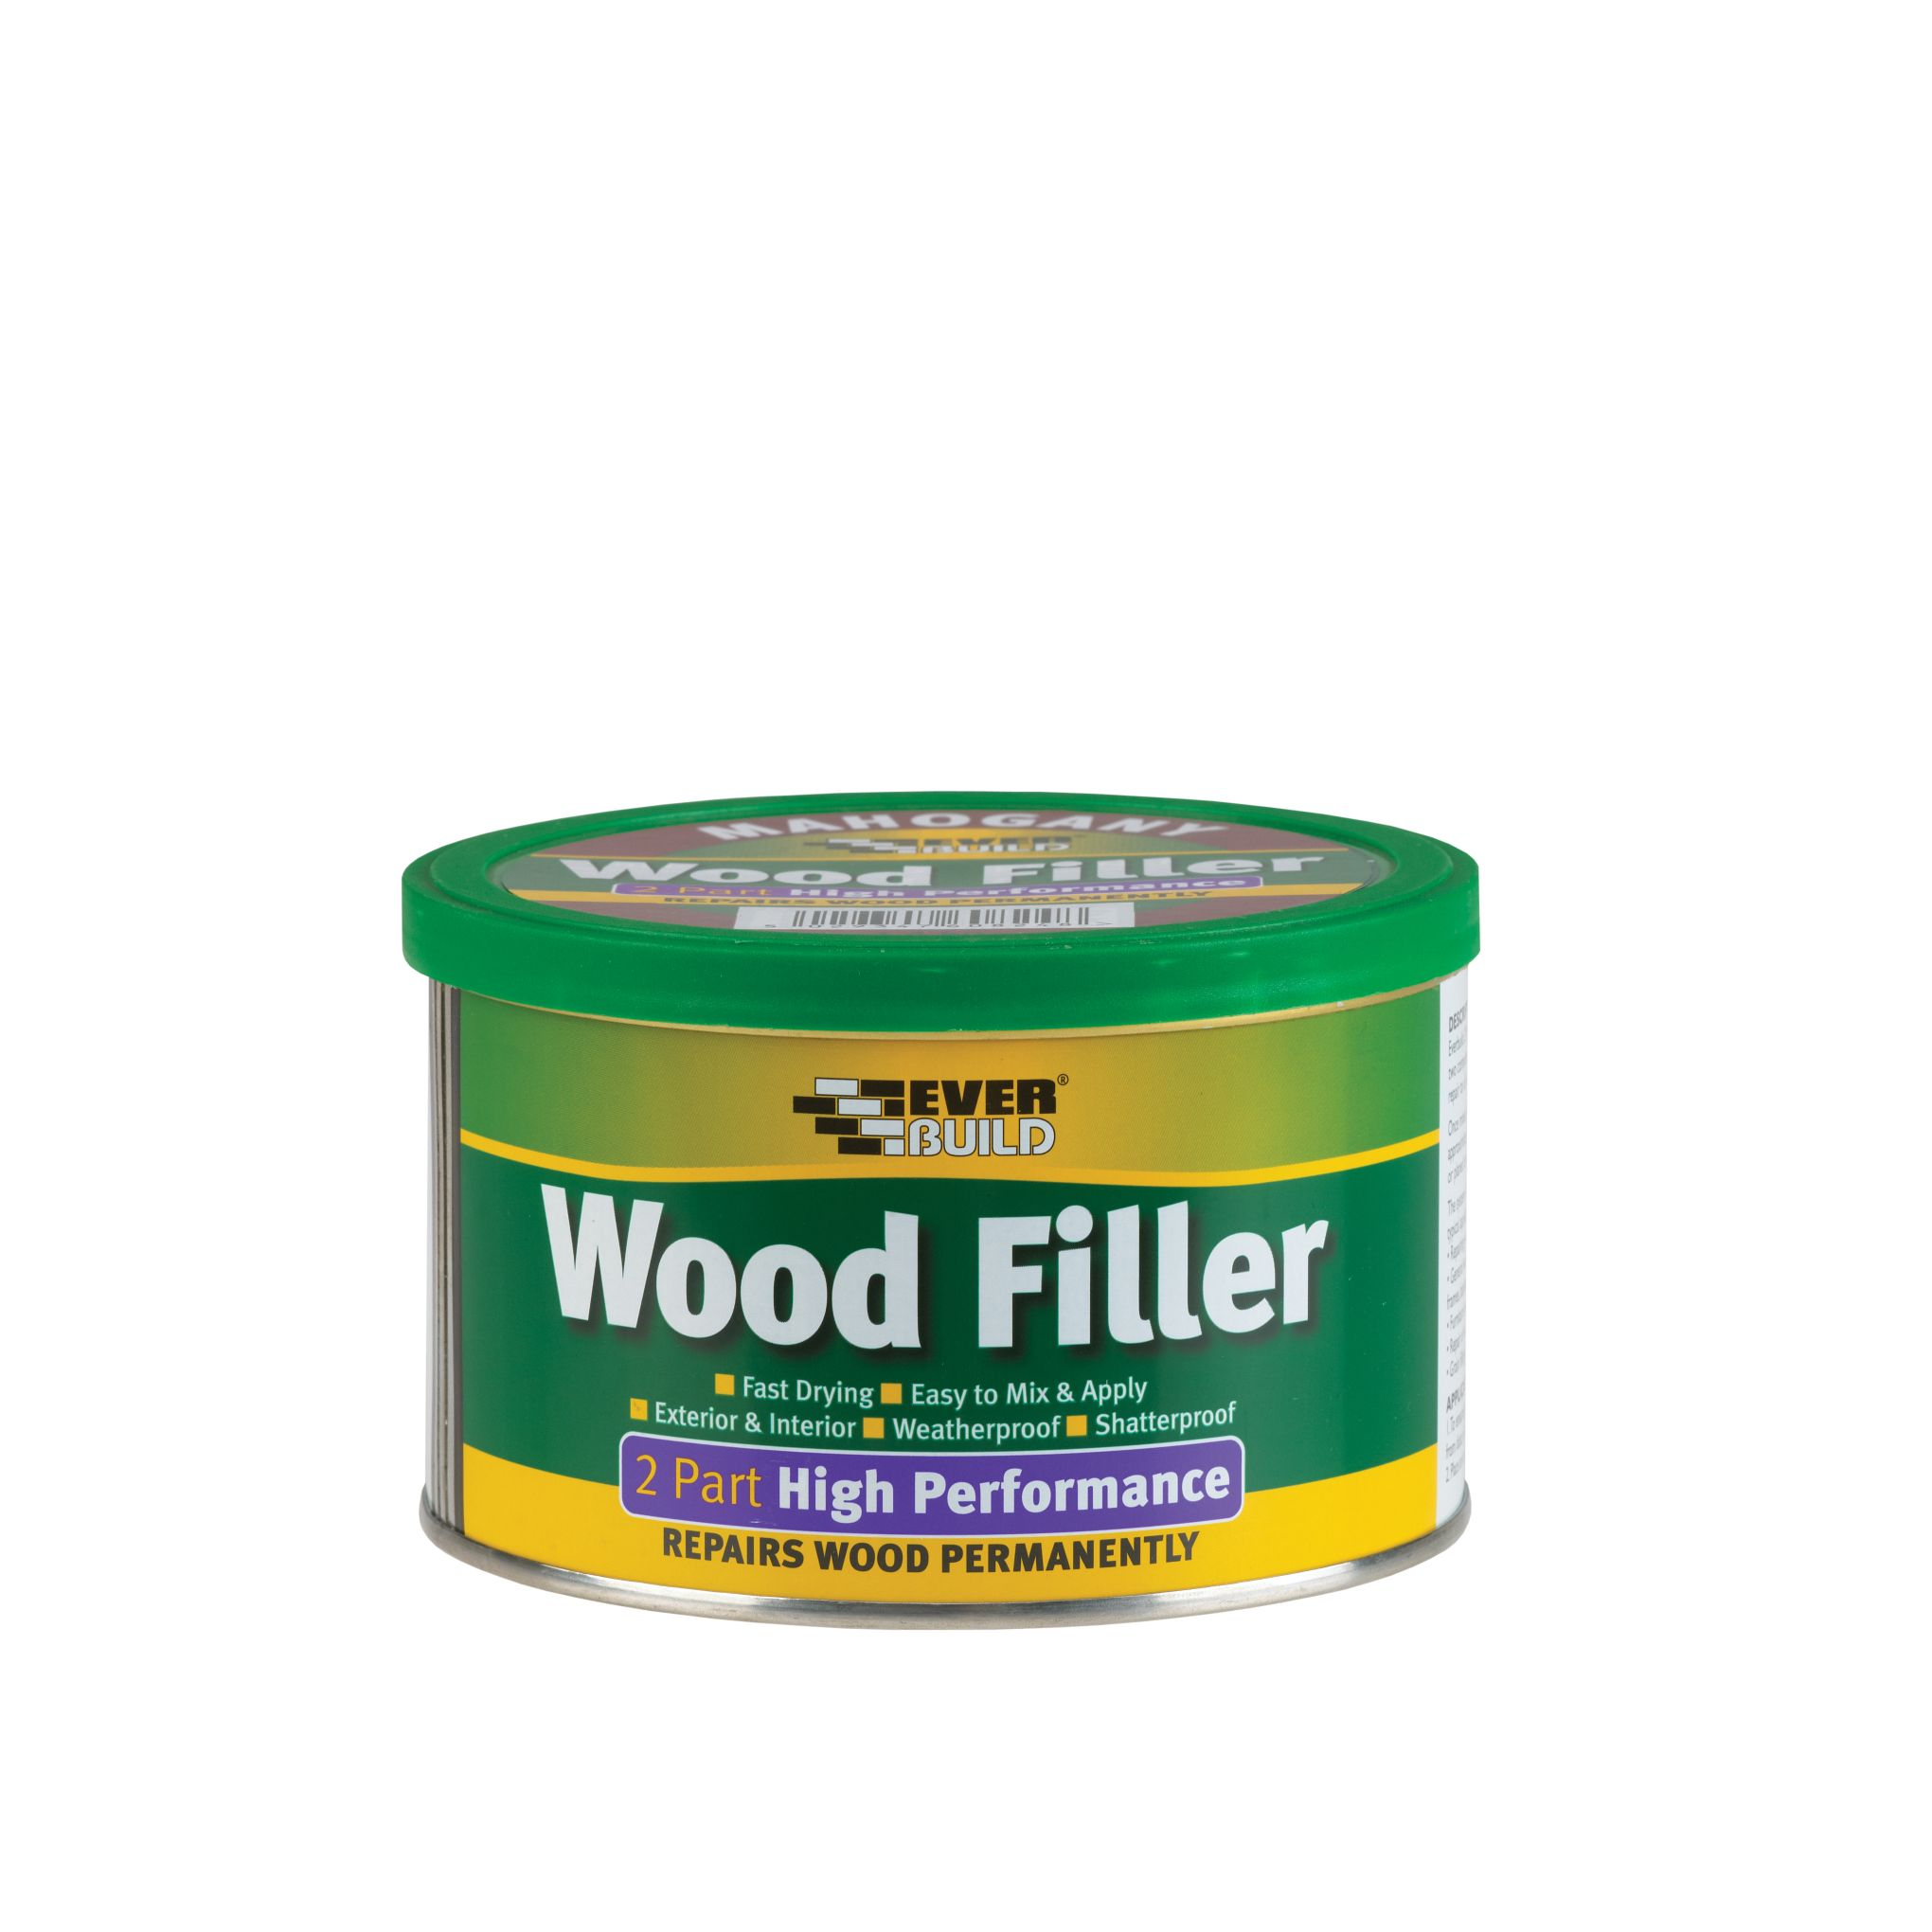 HIGH PERFORMANCE 2-PART WOOD FILLER 500G PINE